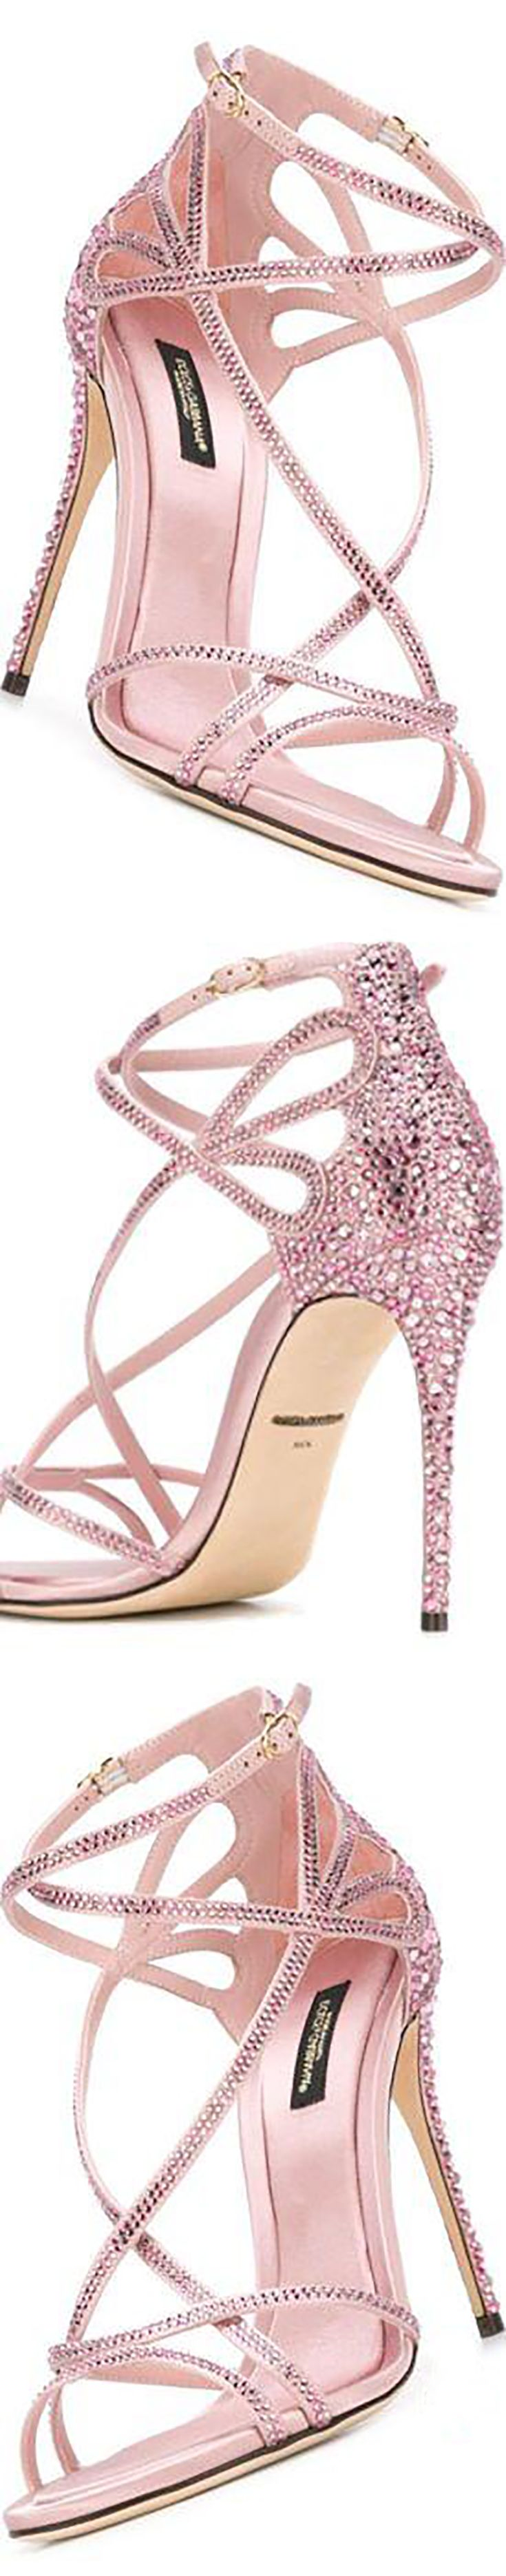 Dolce & Gabbana Keira sandals  These pink leather Keira sandals from Dolce & Gabbana feature an open toe, rhinestone embellishments, a brand embossed insole, a high stiletto heel and a side buckle fastening.  #sandals #heels #shoes #afflink #pink #dolcegabbana